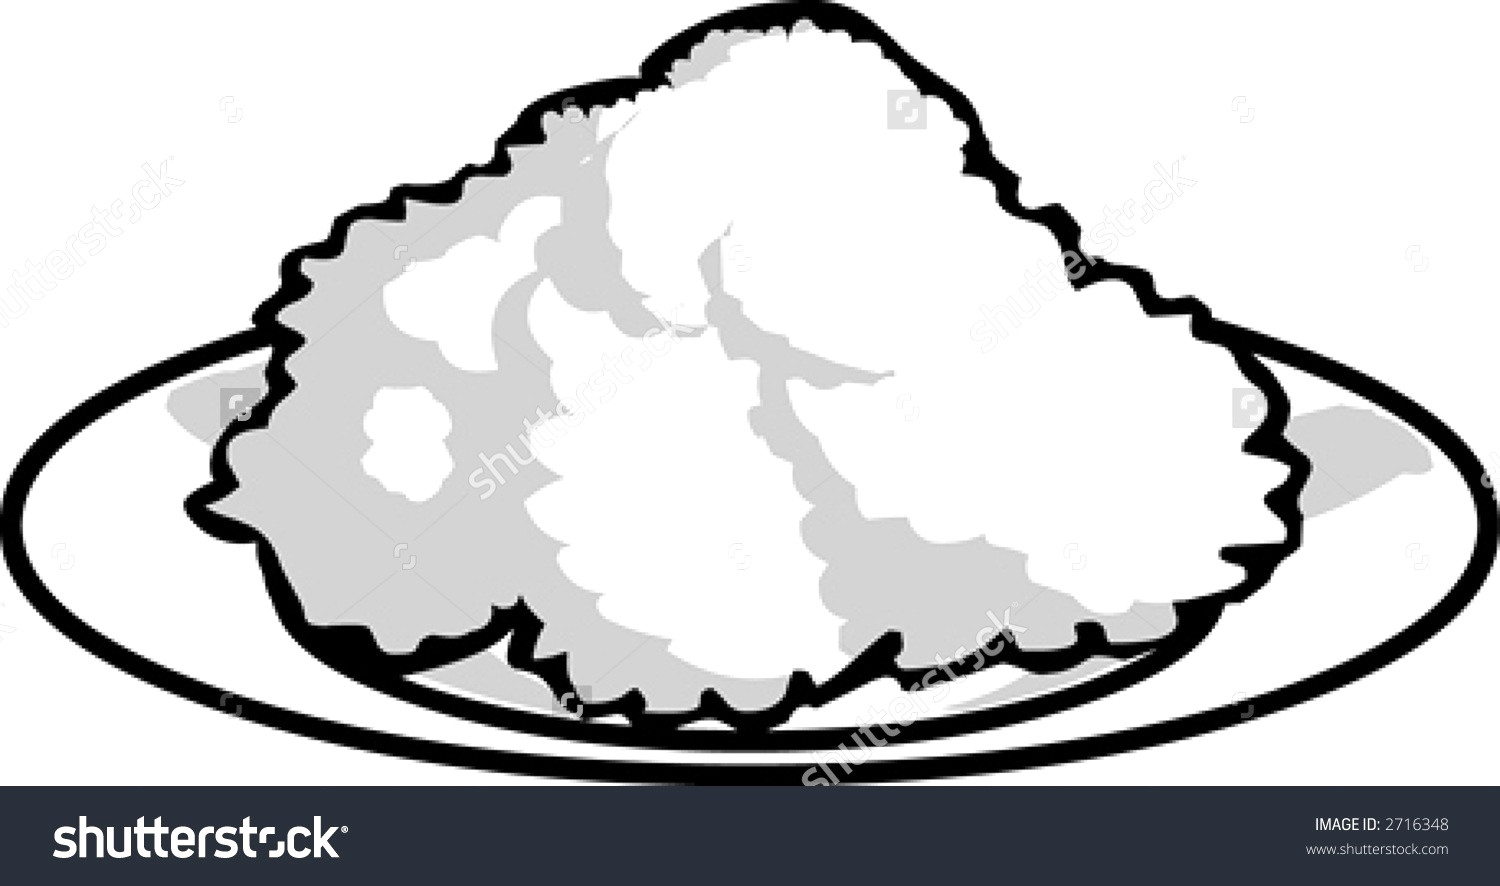 Announcements clipart black and white. Plate of rice hd